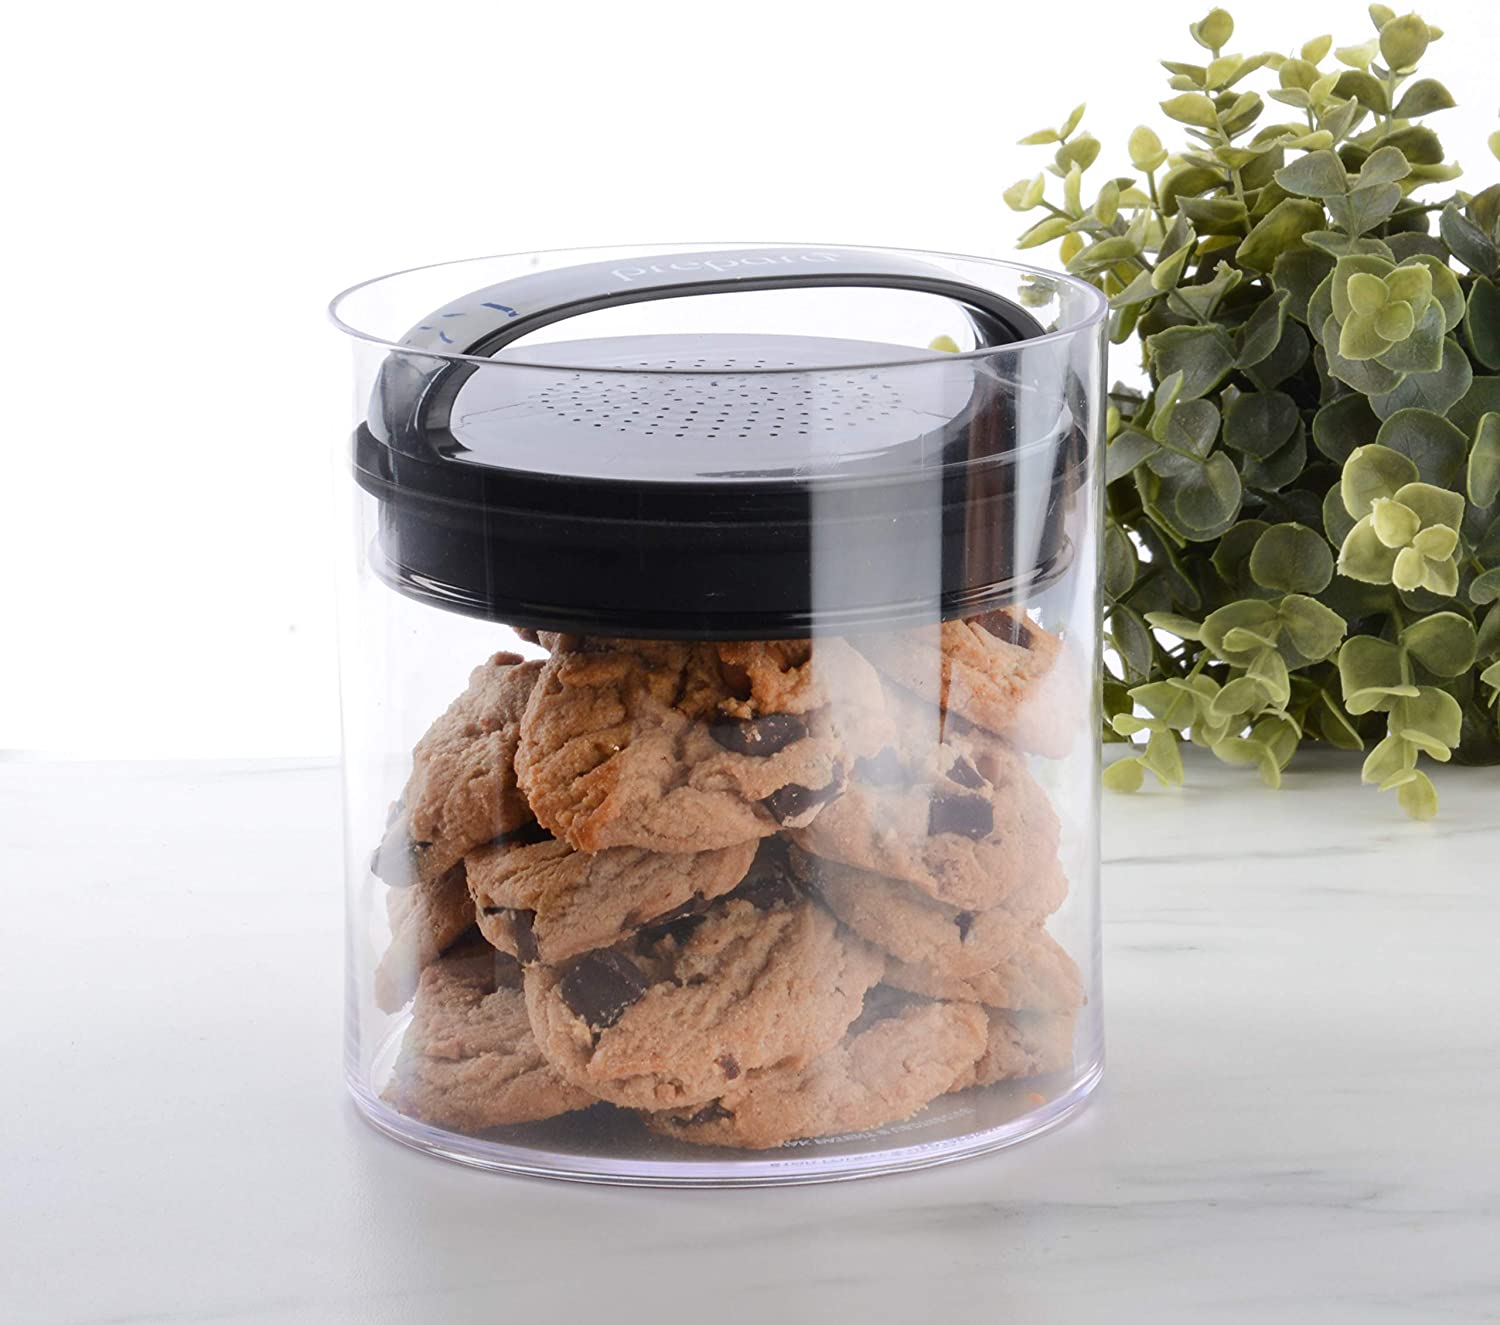 Evak Fresh Airless Storage Canister, Patented & Designed in USA, Large/Short (57.6 Ounce, 7.2 cup Capacity)